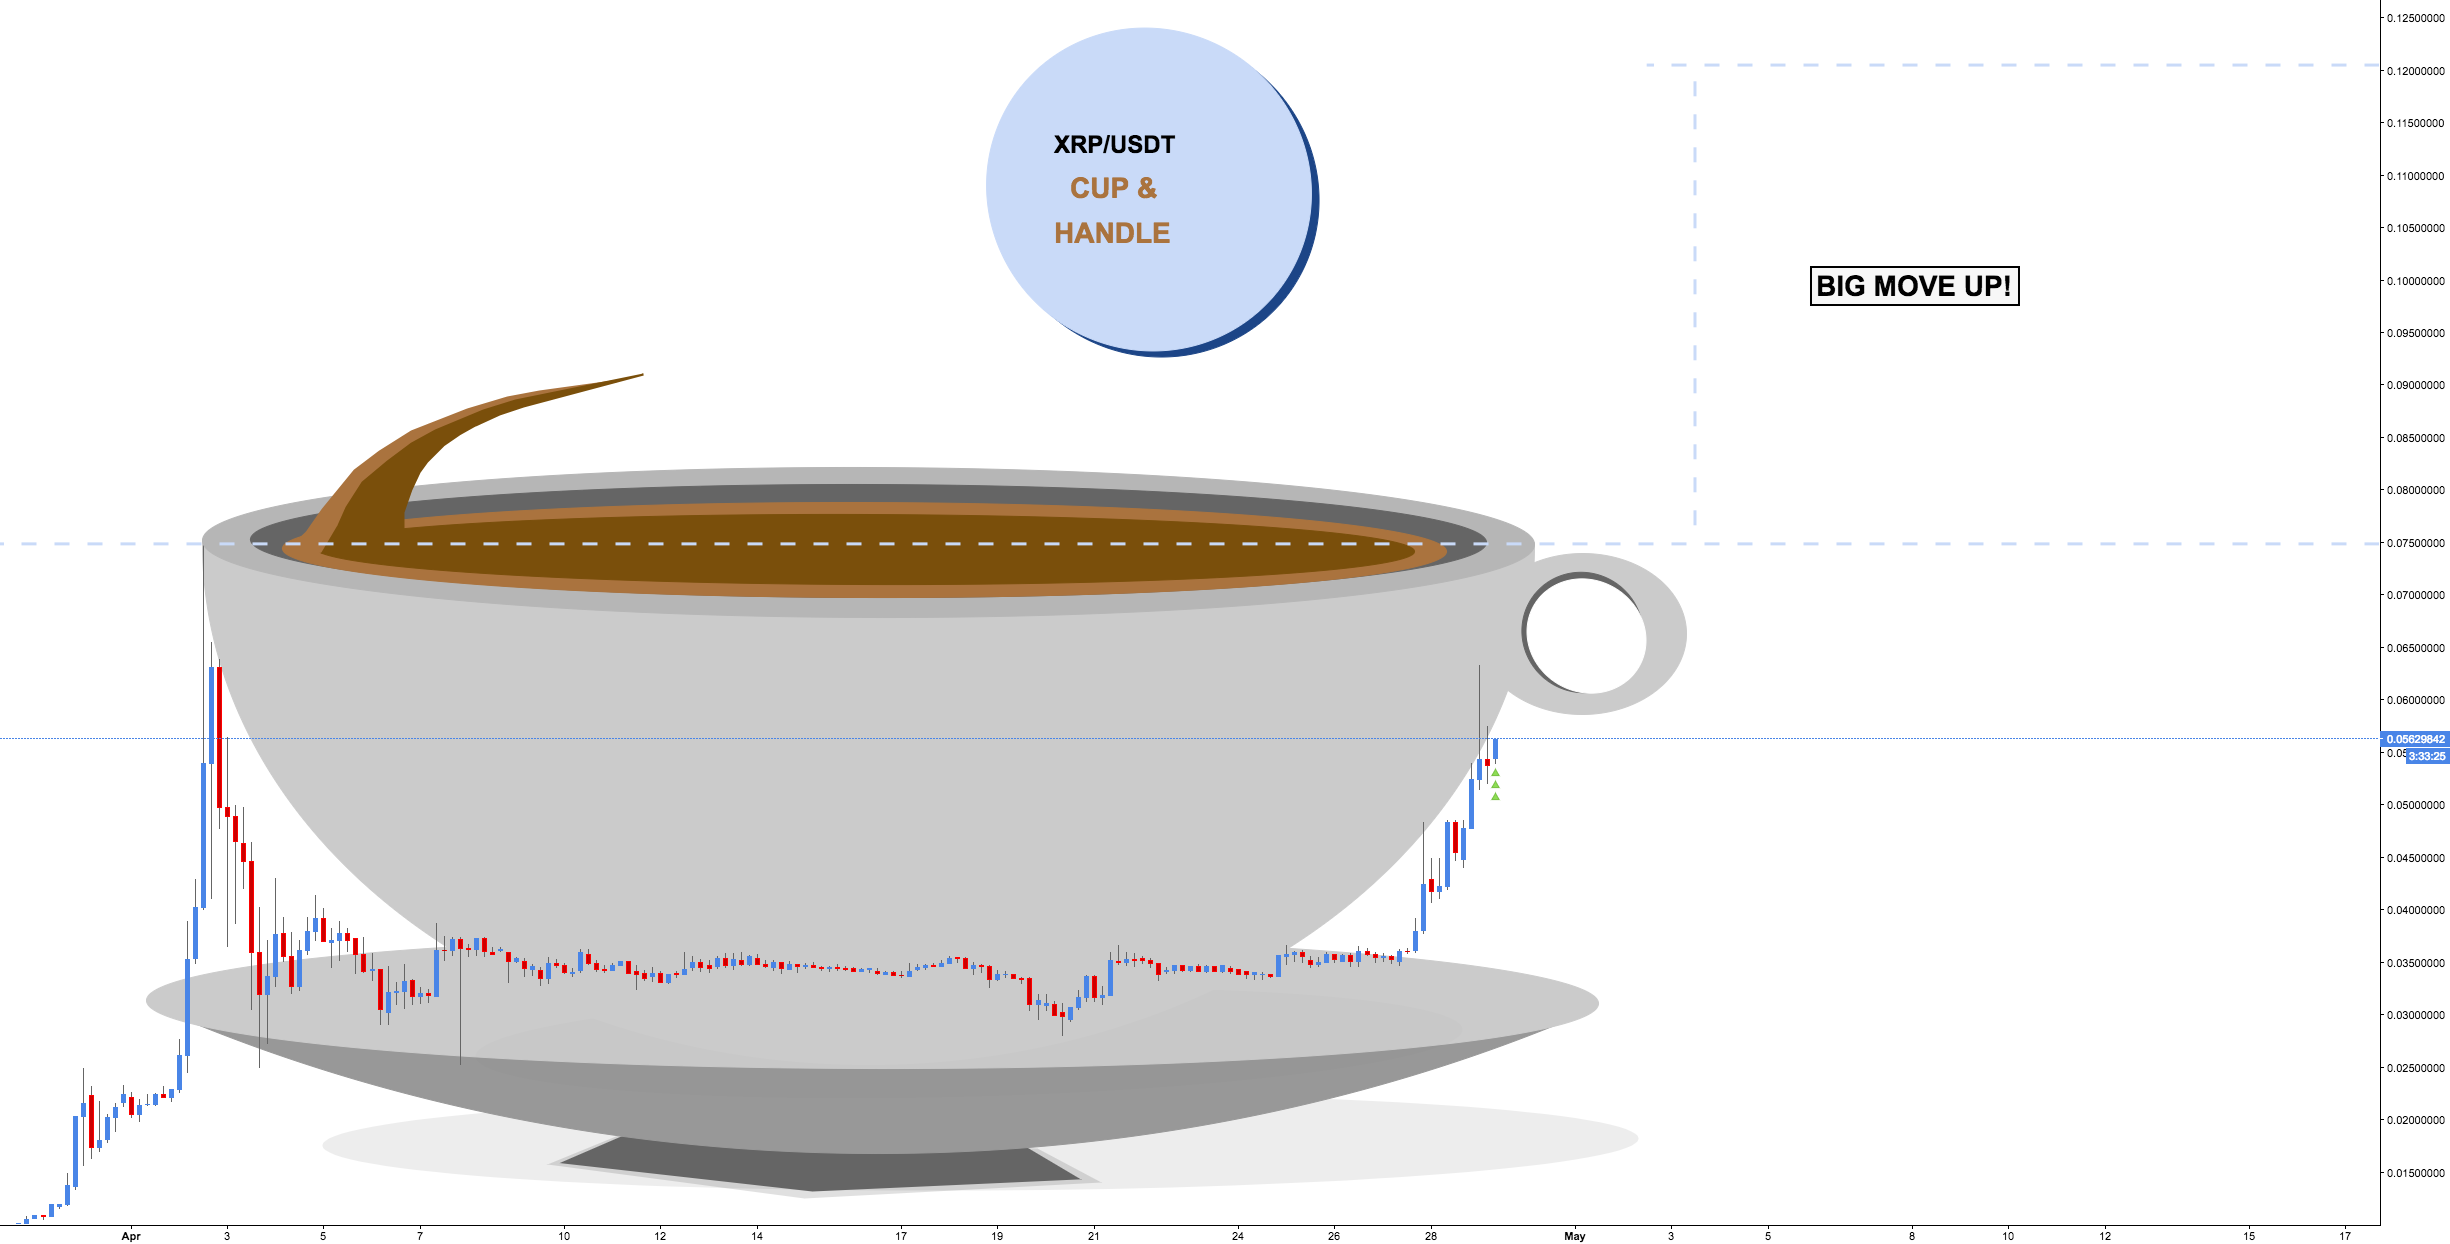 Ripple - Cup and Handle